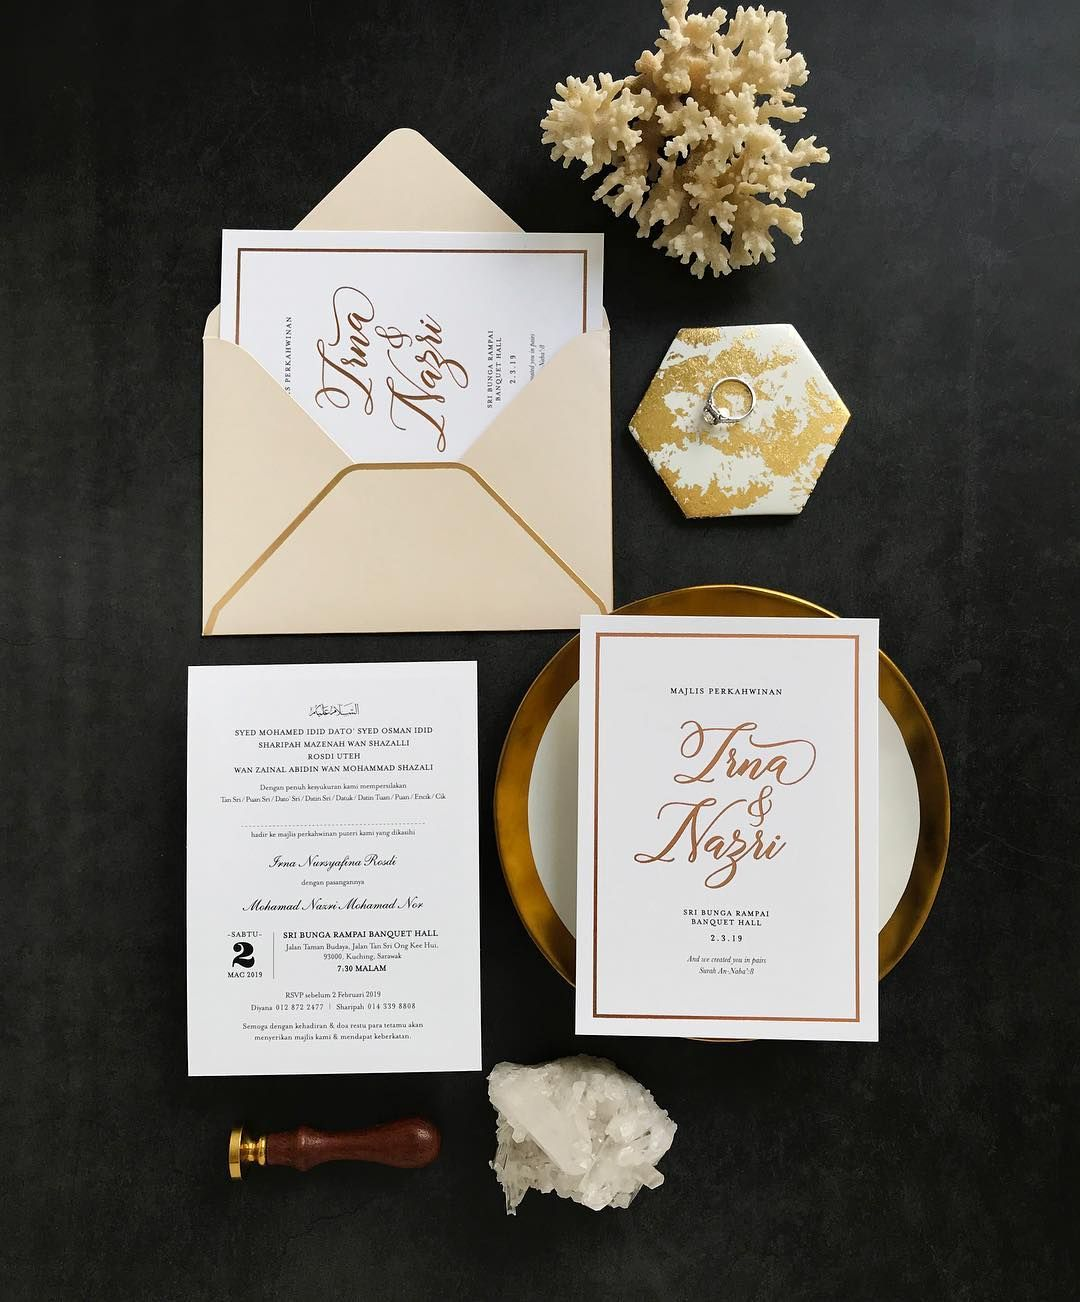 Kad Kahwin Wedding Invitations On Instagram Let S Talk About Design Shall We There Are These Assumptions That Kad Kahwin Wedding Card Design Wedding Cards